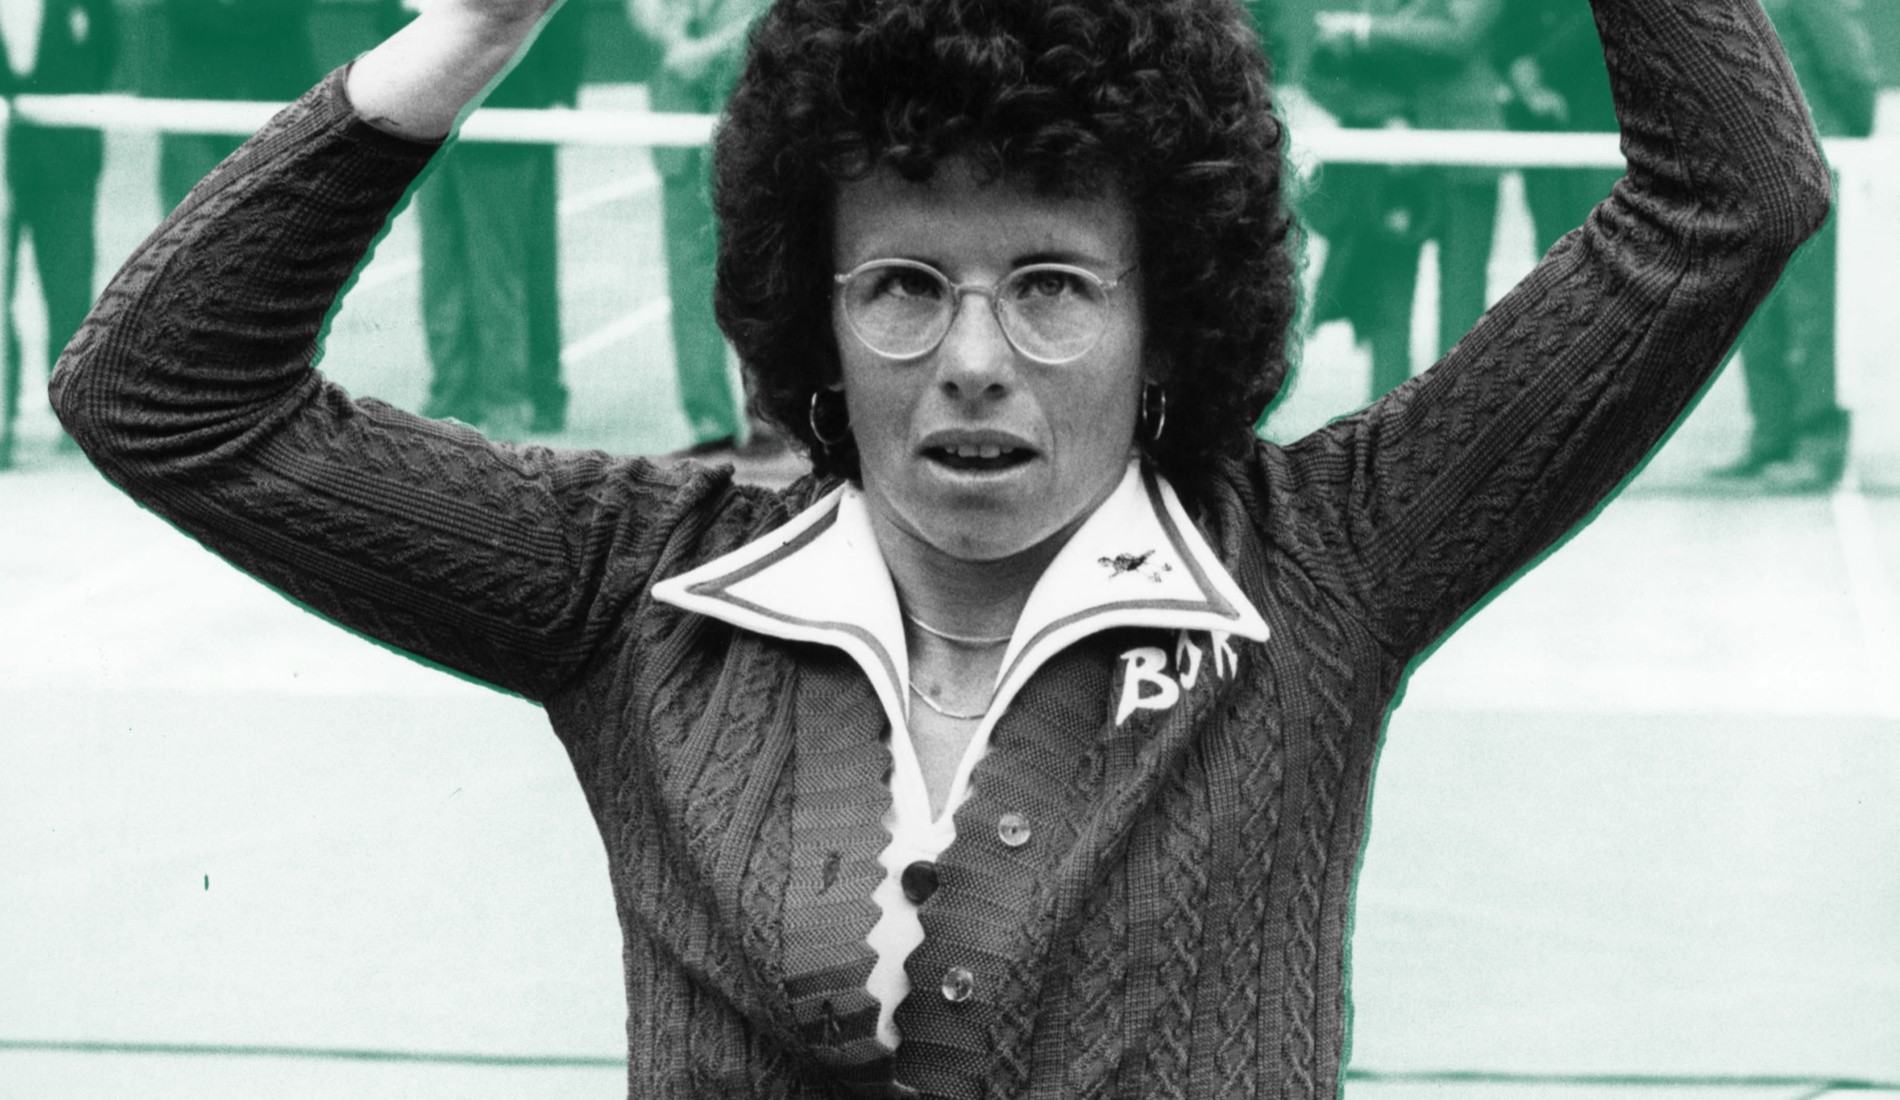 Billie Jean King - On this day